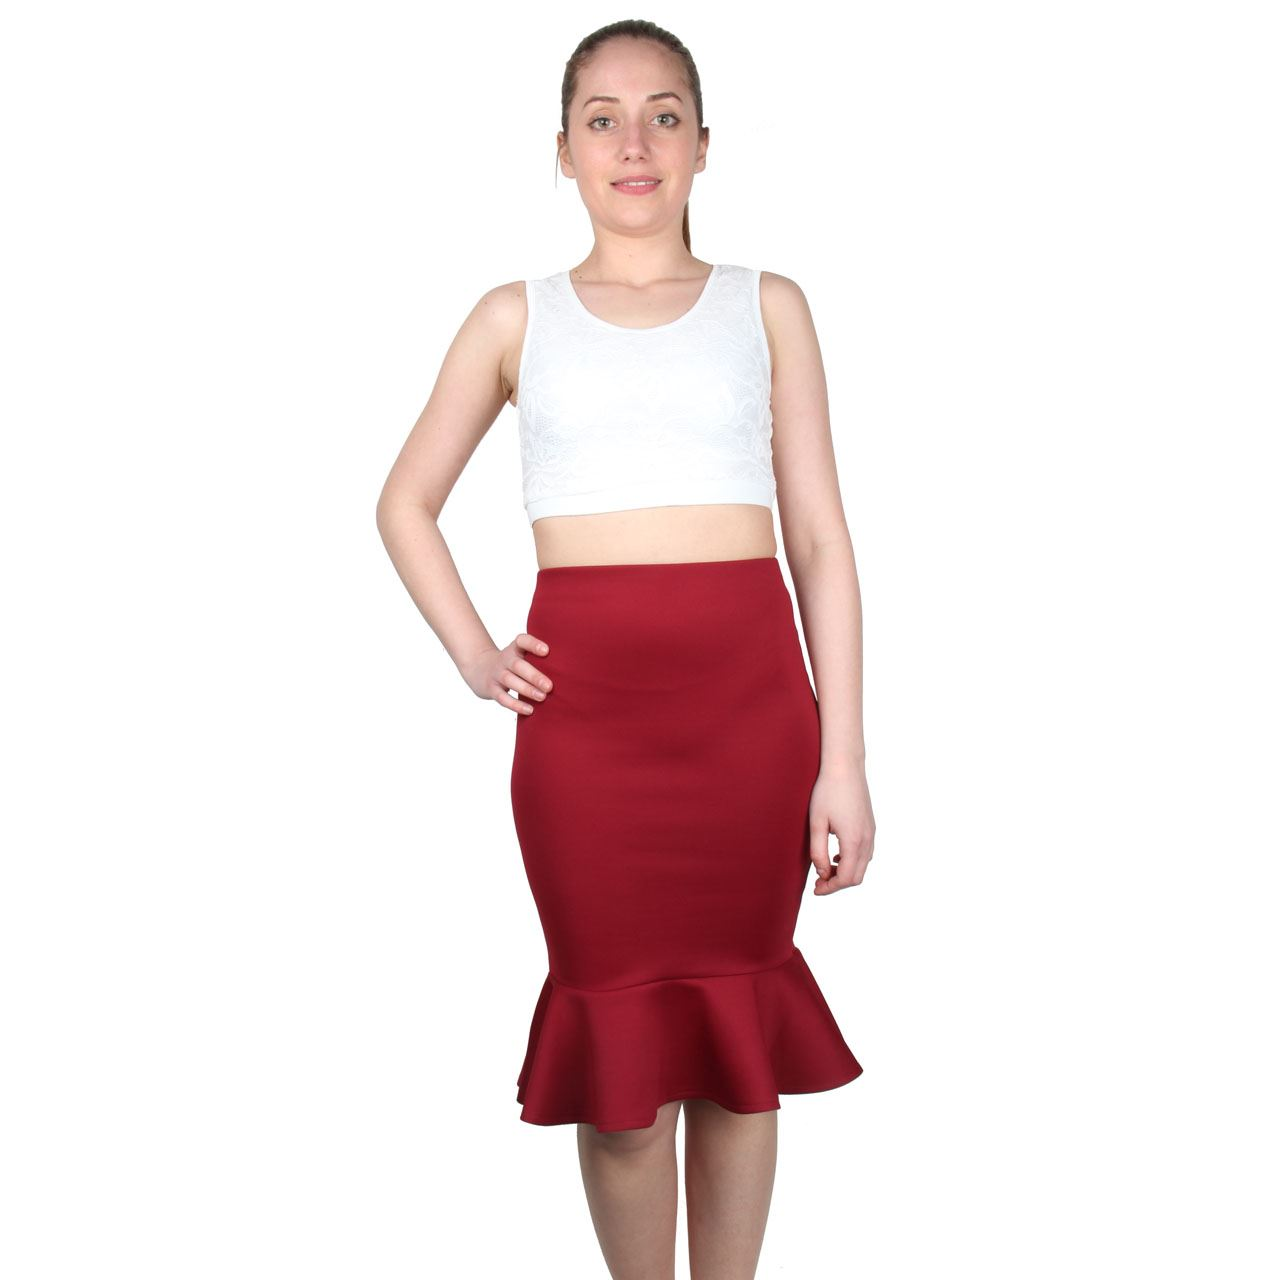 Midi skirts make a fabulous addition to any woman's wardrobe. Whether she is in the market for casual looks or is looking for professional pieces for the office, there is a perfect one to suit her.